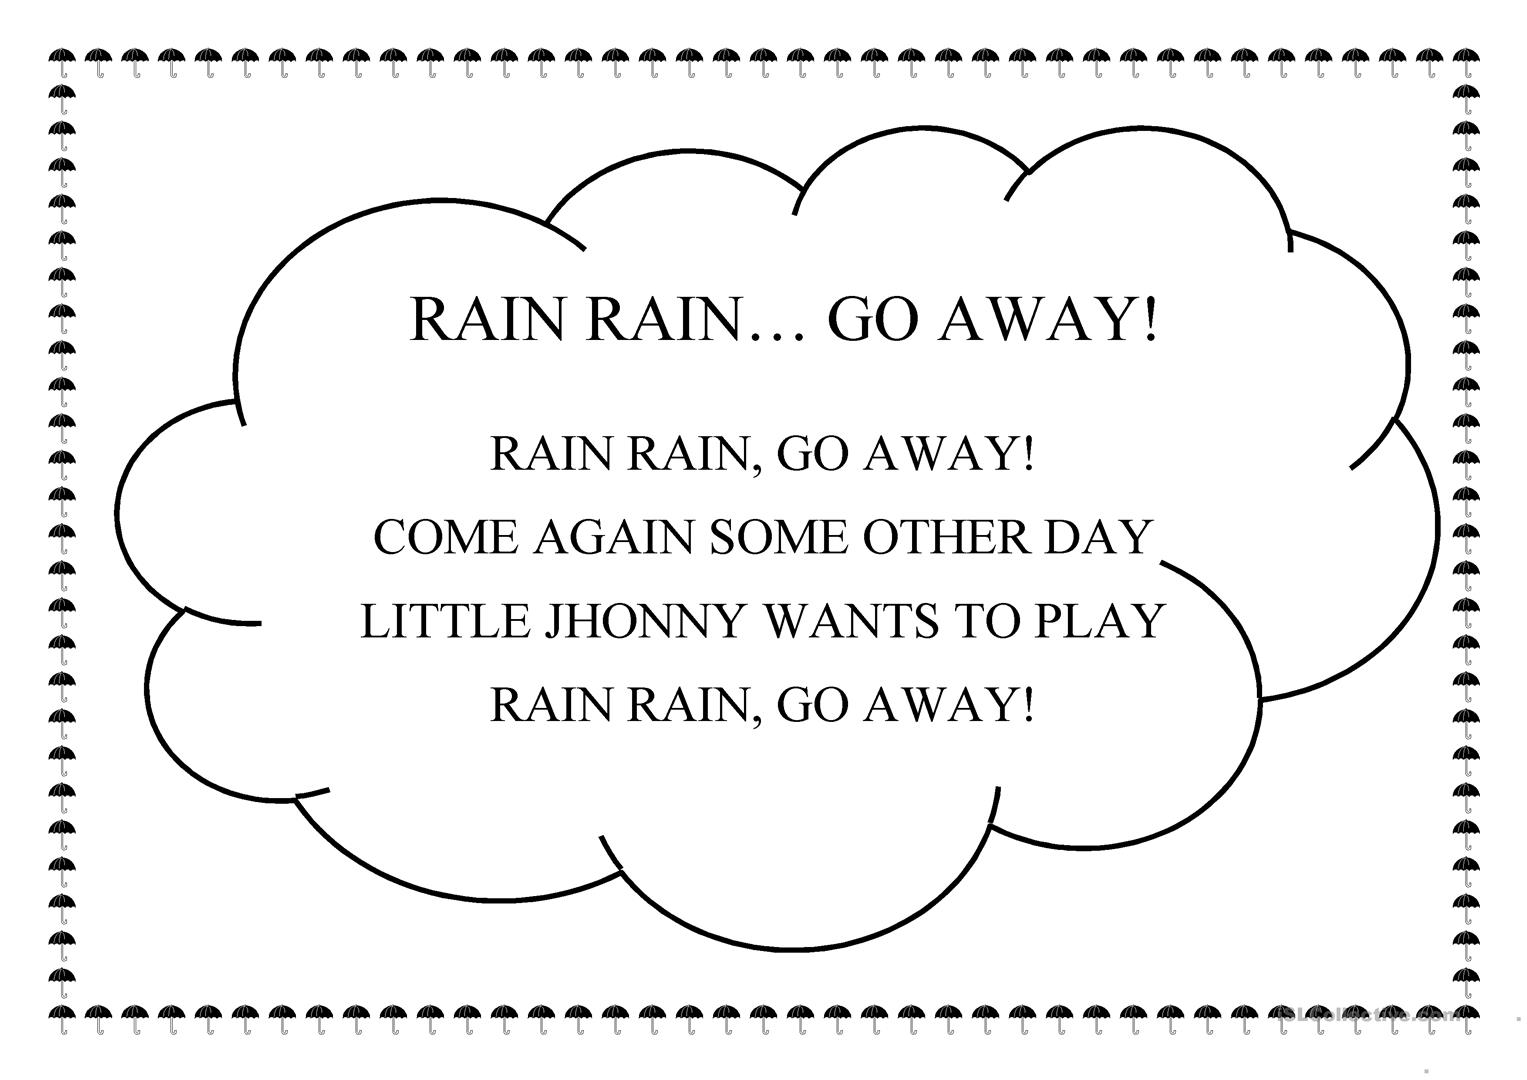 worksheet  Rain Rain Go Away Worksheet  Carlos Lomas Worksheet For additionally Worksheets   Saint Mary's Press as well Rain Count   Worksheet   Education as well Go Away  Worksheet – Match  Trace    Color   Super Simple moreover Rain  Rain  Go Away   Print Sheet Music Now likewise Rain rain  go away  worksheet   Free ESL printable worksheets made furthermore Rain Rain Go Away Song Supplementary Worksheet and Lyric   ESL additionally paring sets worksheet  2027622   Worksheets liry moreover Para Rain Go Away Worksheet Free Worksheets The Came Down For also  likewise  also Make a Rain Gauge   Worksheets   Printables   Scholastic   Parents as well Rain rain  go away  worksheet   Free ESL printable worksheets made further Rain Rain Go Away   ESL worksheet by manonski  f besides  furthermore KINDER SMART WORK   NURSERY RHYMES WORKSHEETS COLLECTION 1. on rain go away worksheet